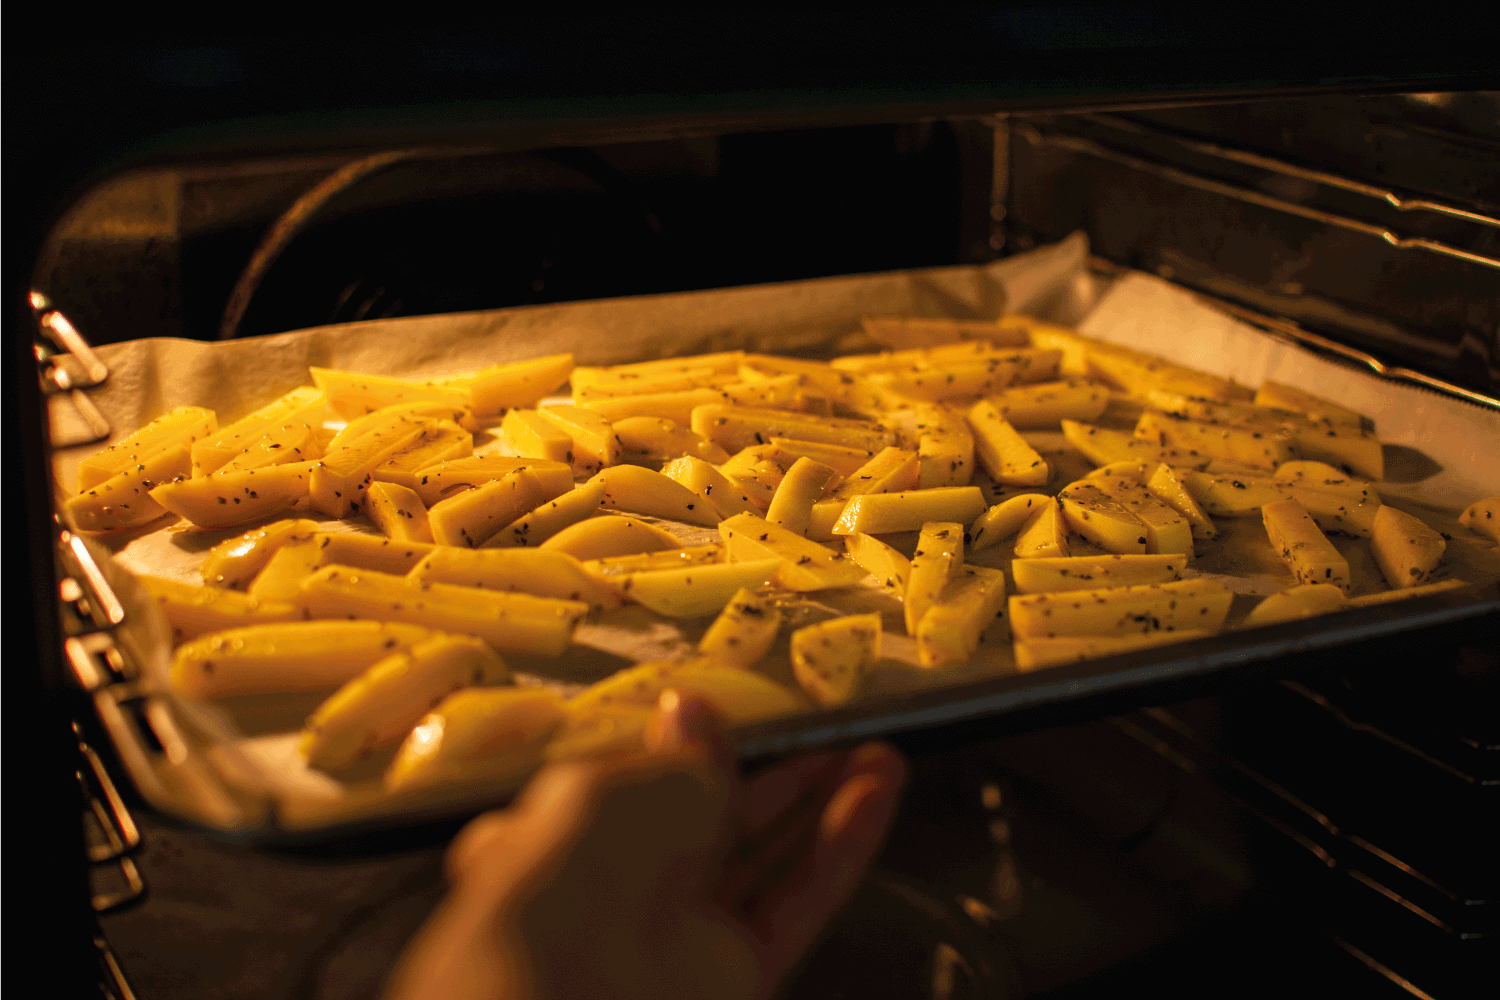 Hand putting tray with cut potatoes into the oven to make a healthy homemade french fries